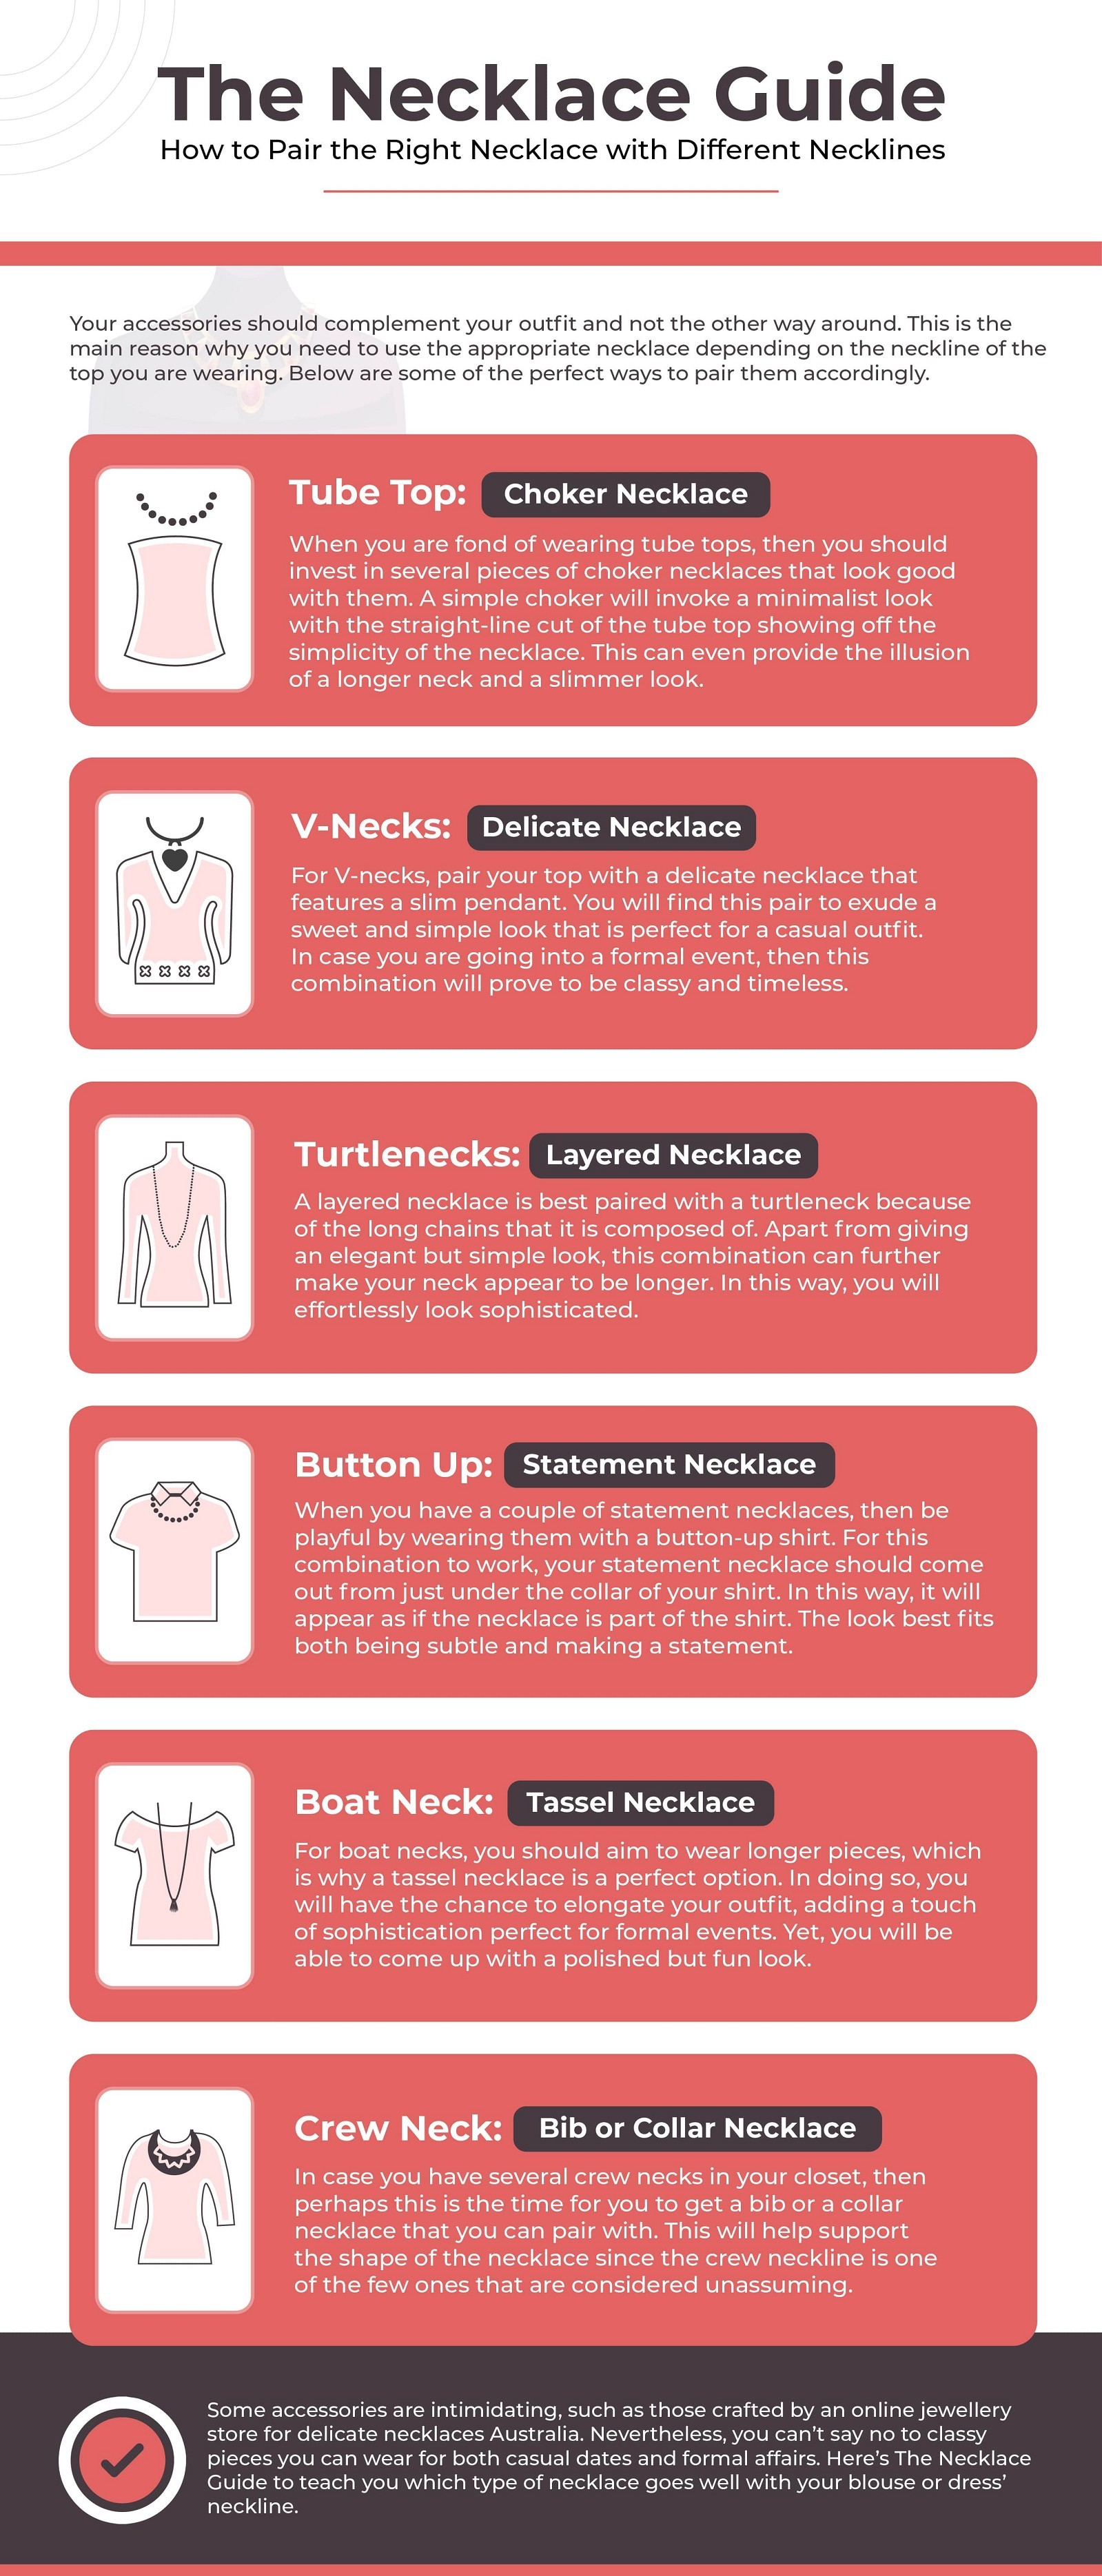 The Necklace Guide: How to Pair the Right Necklace with Different Necklines